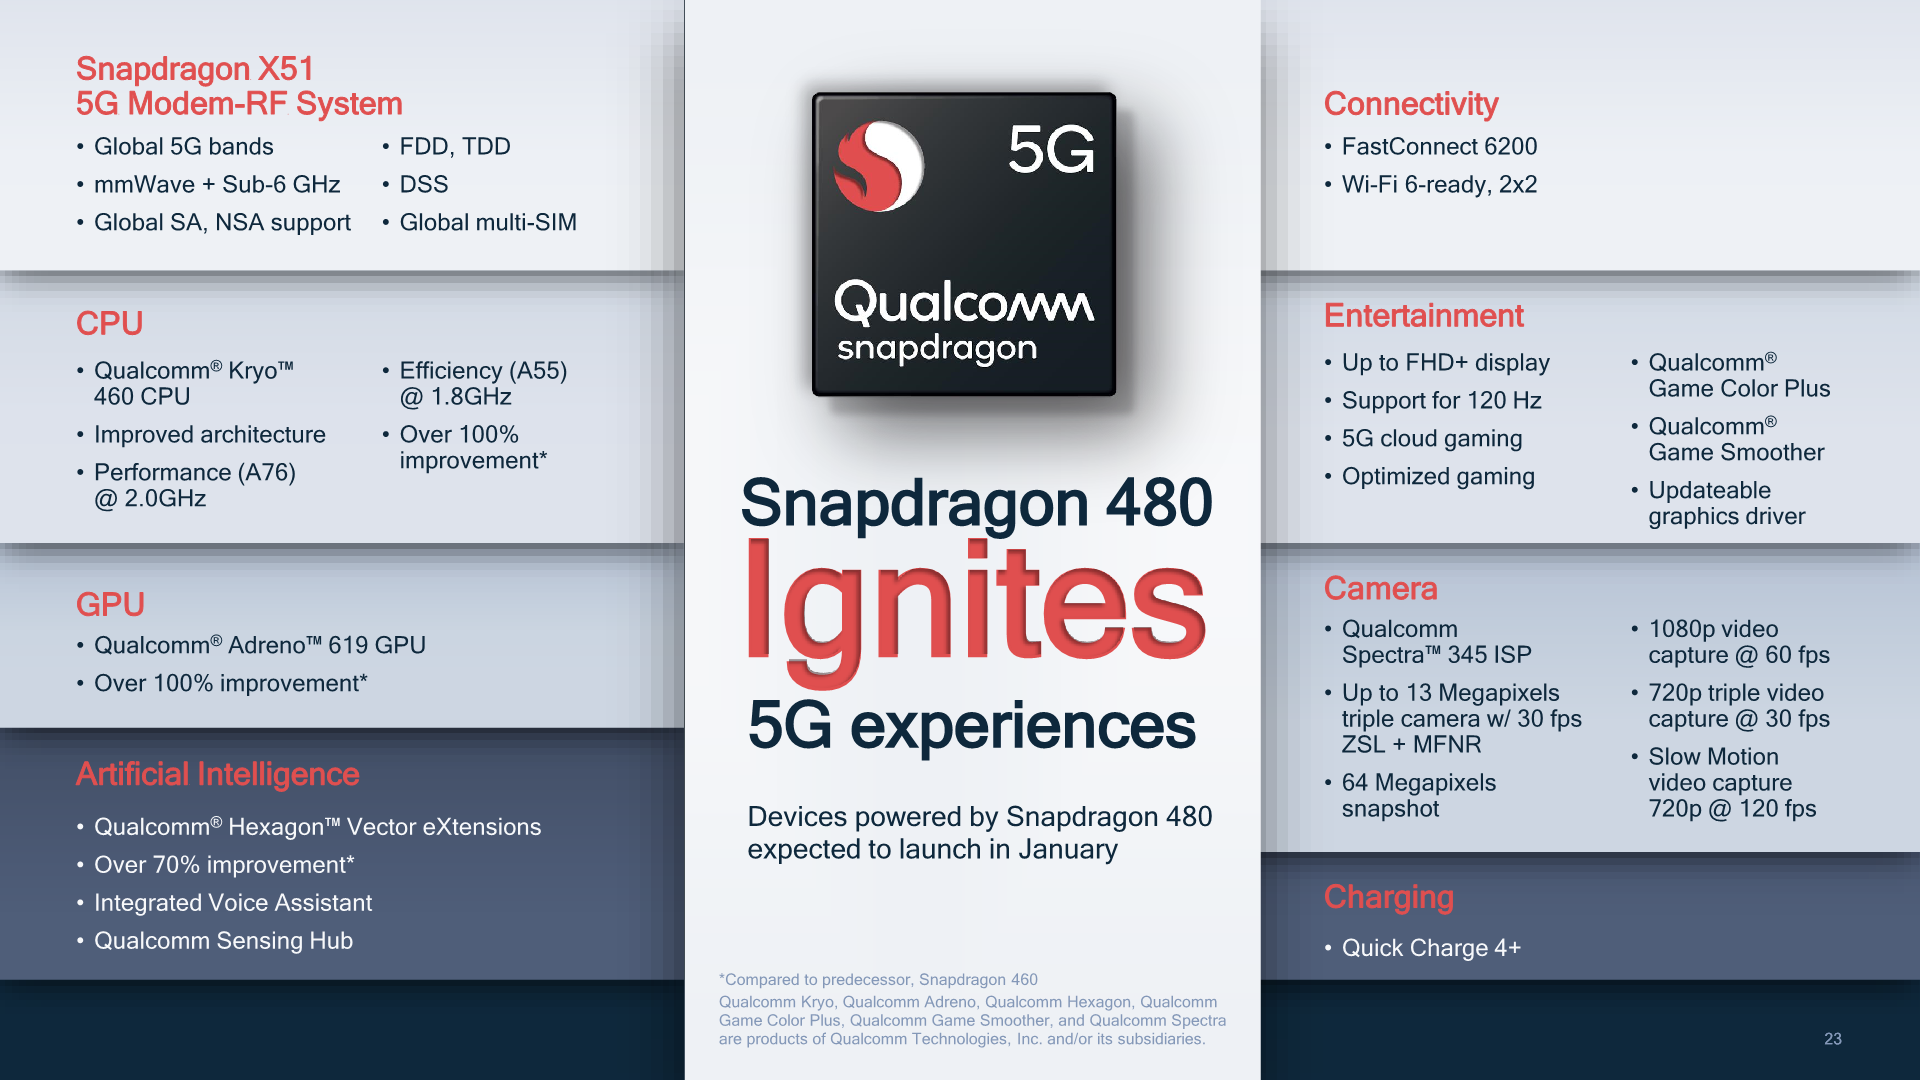 Qualcomm Snapdragon 480 5G